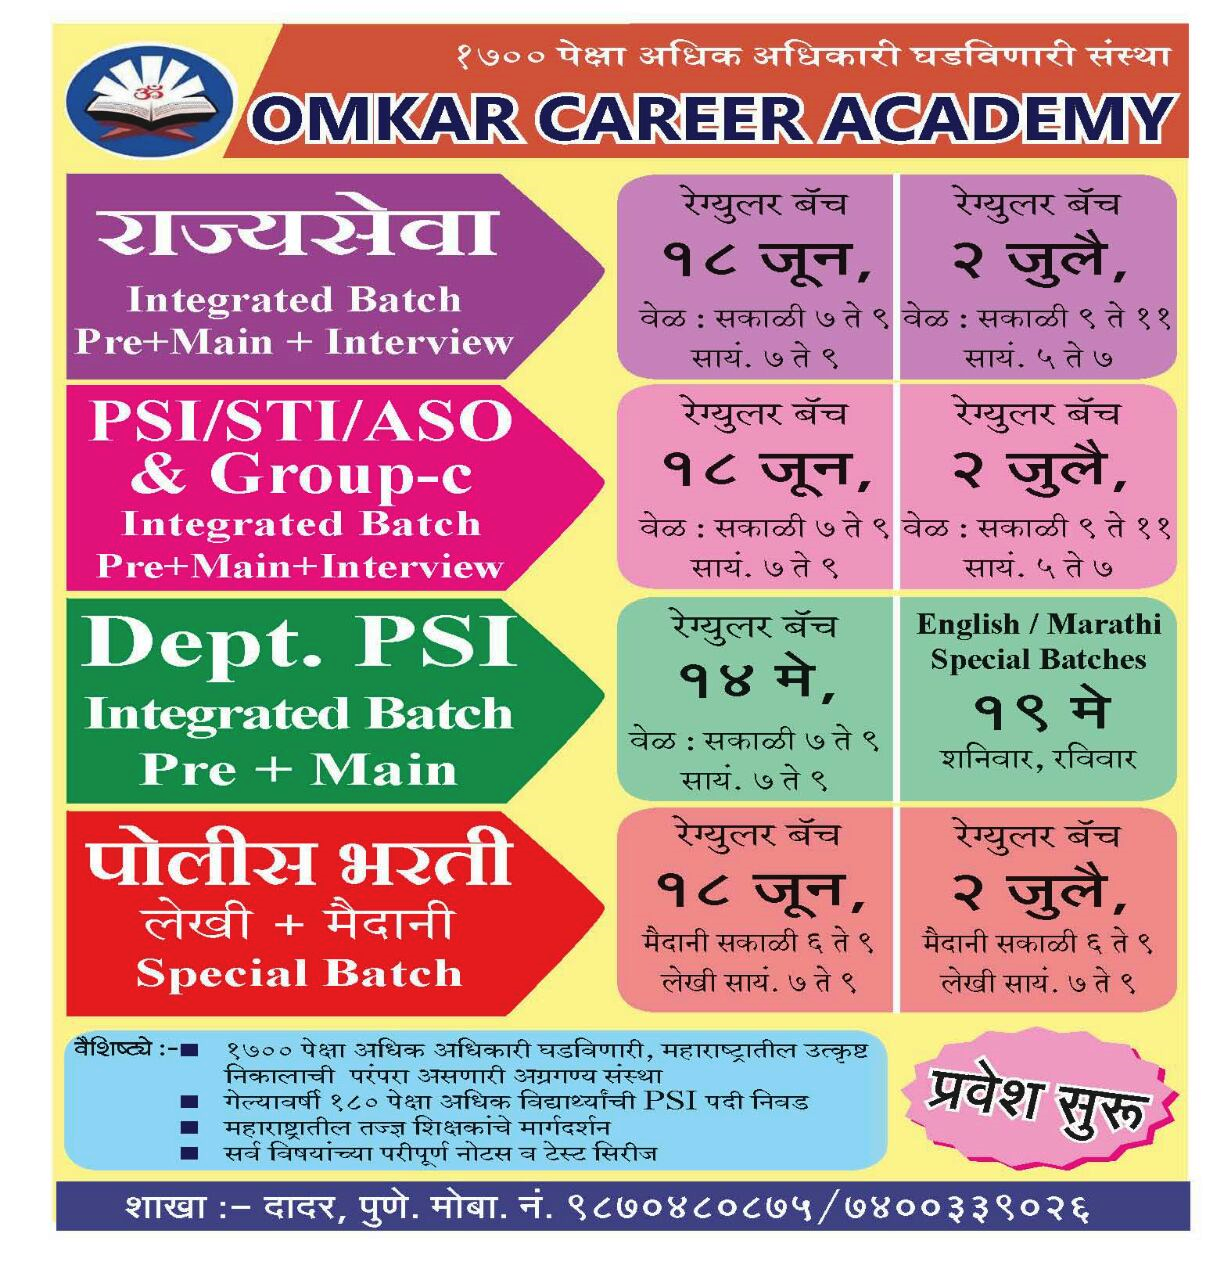 Omkar Career Academy New Batch Registration Started